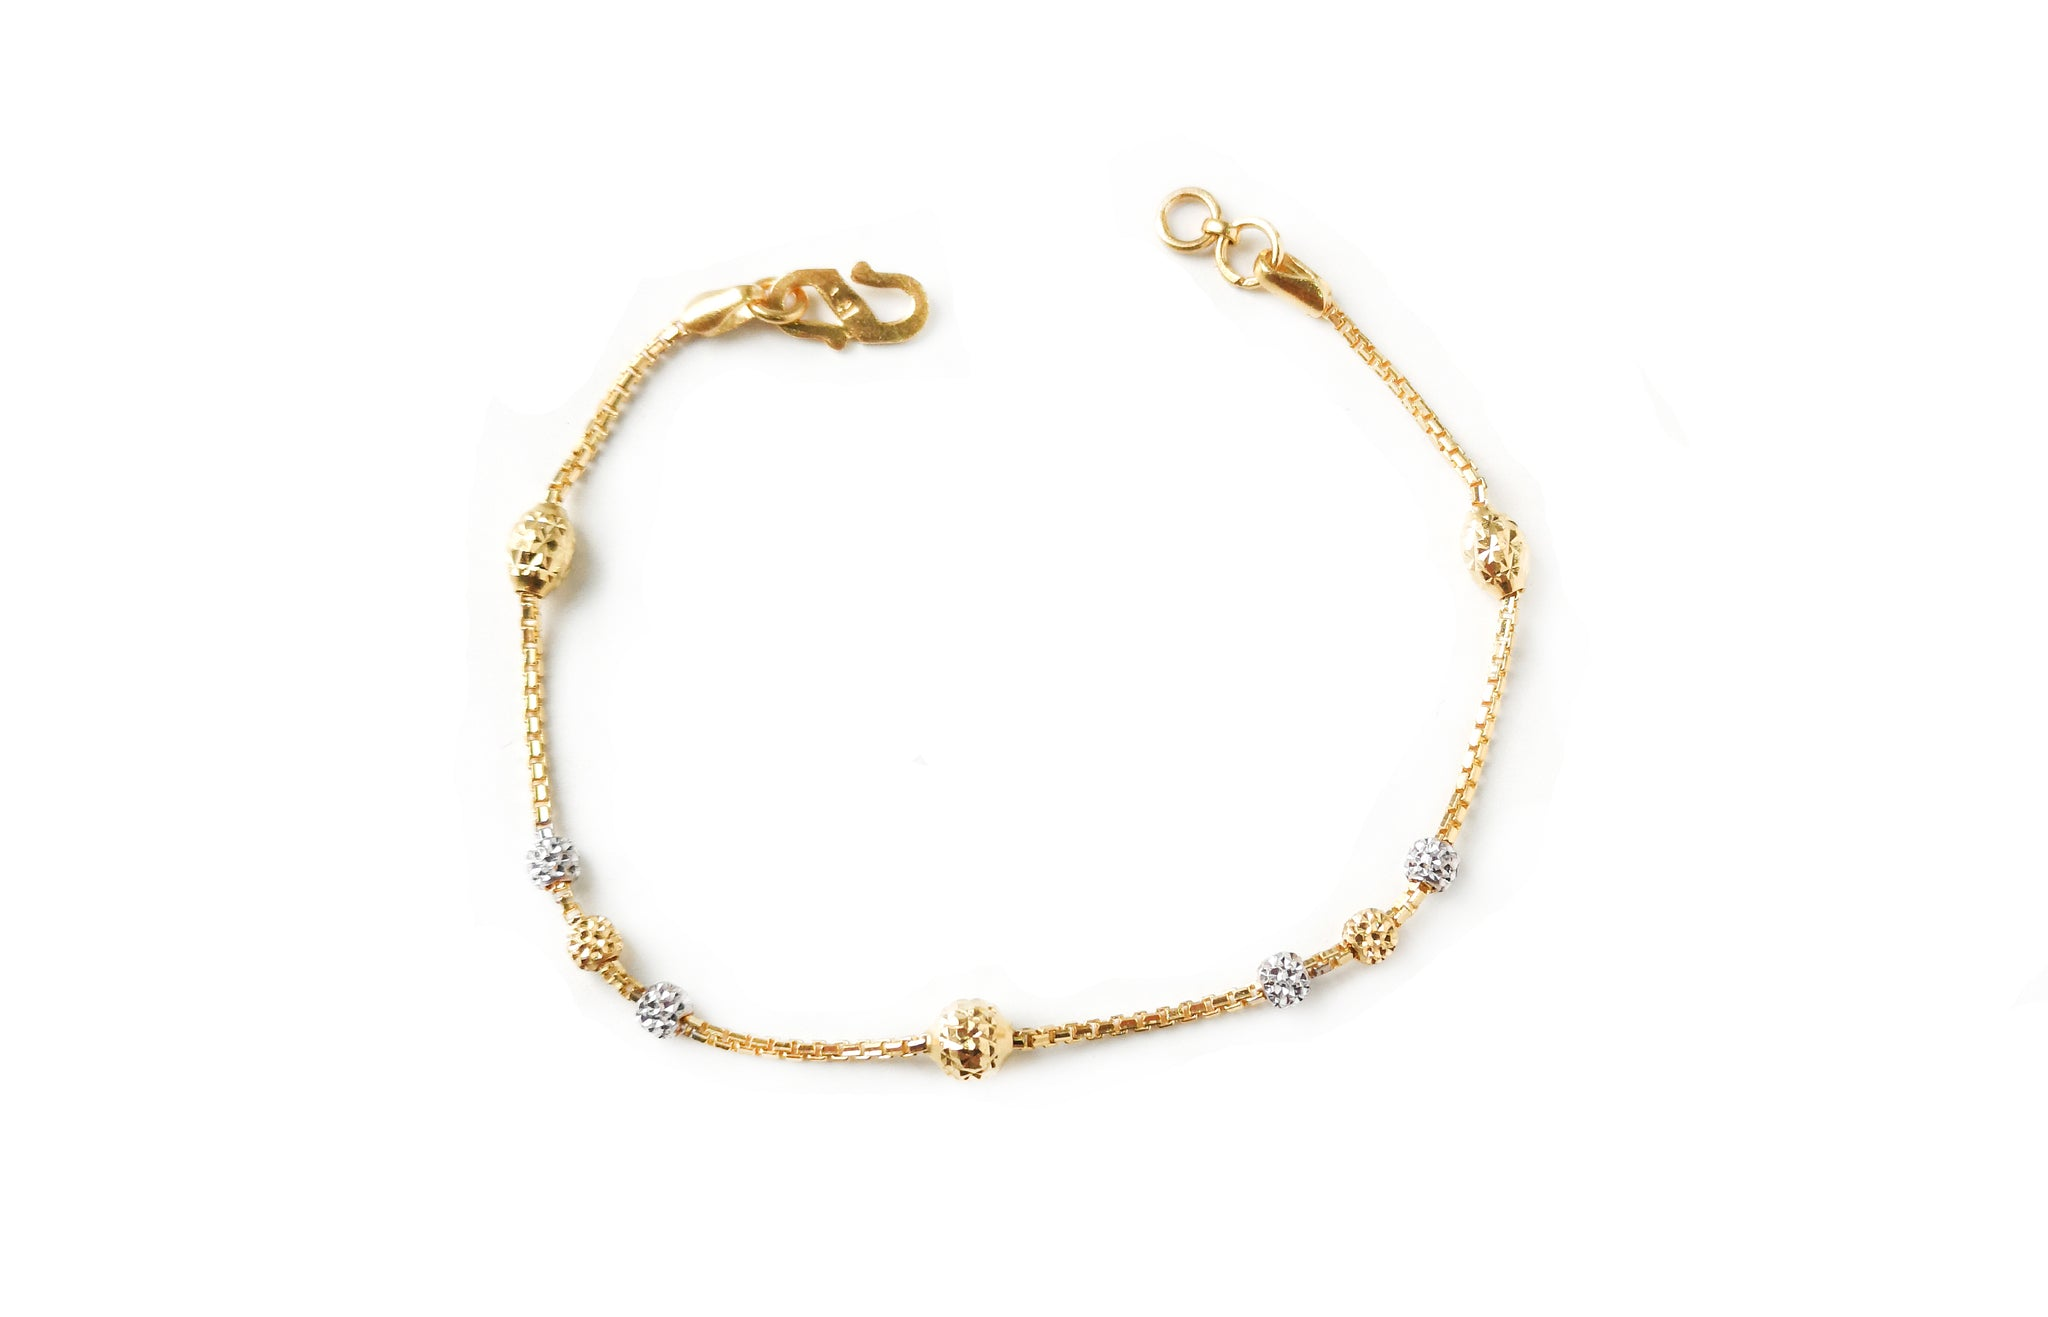 22ct Gold Bracelet with Diamond Cut and Rhodium Design (4.4g) LBR-7663